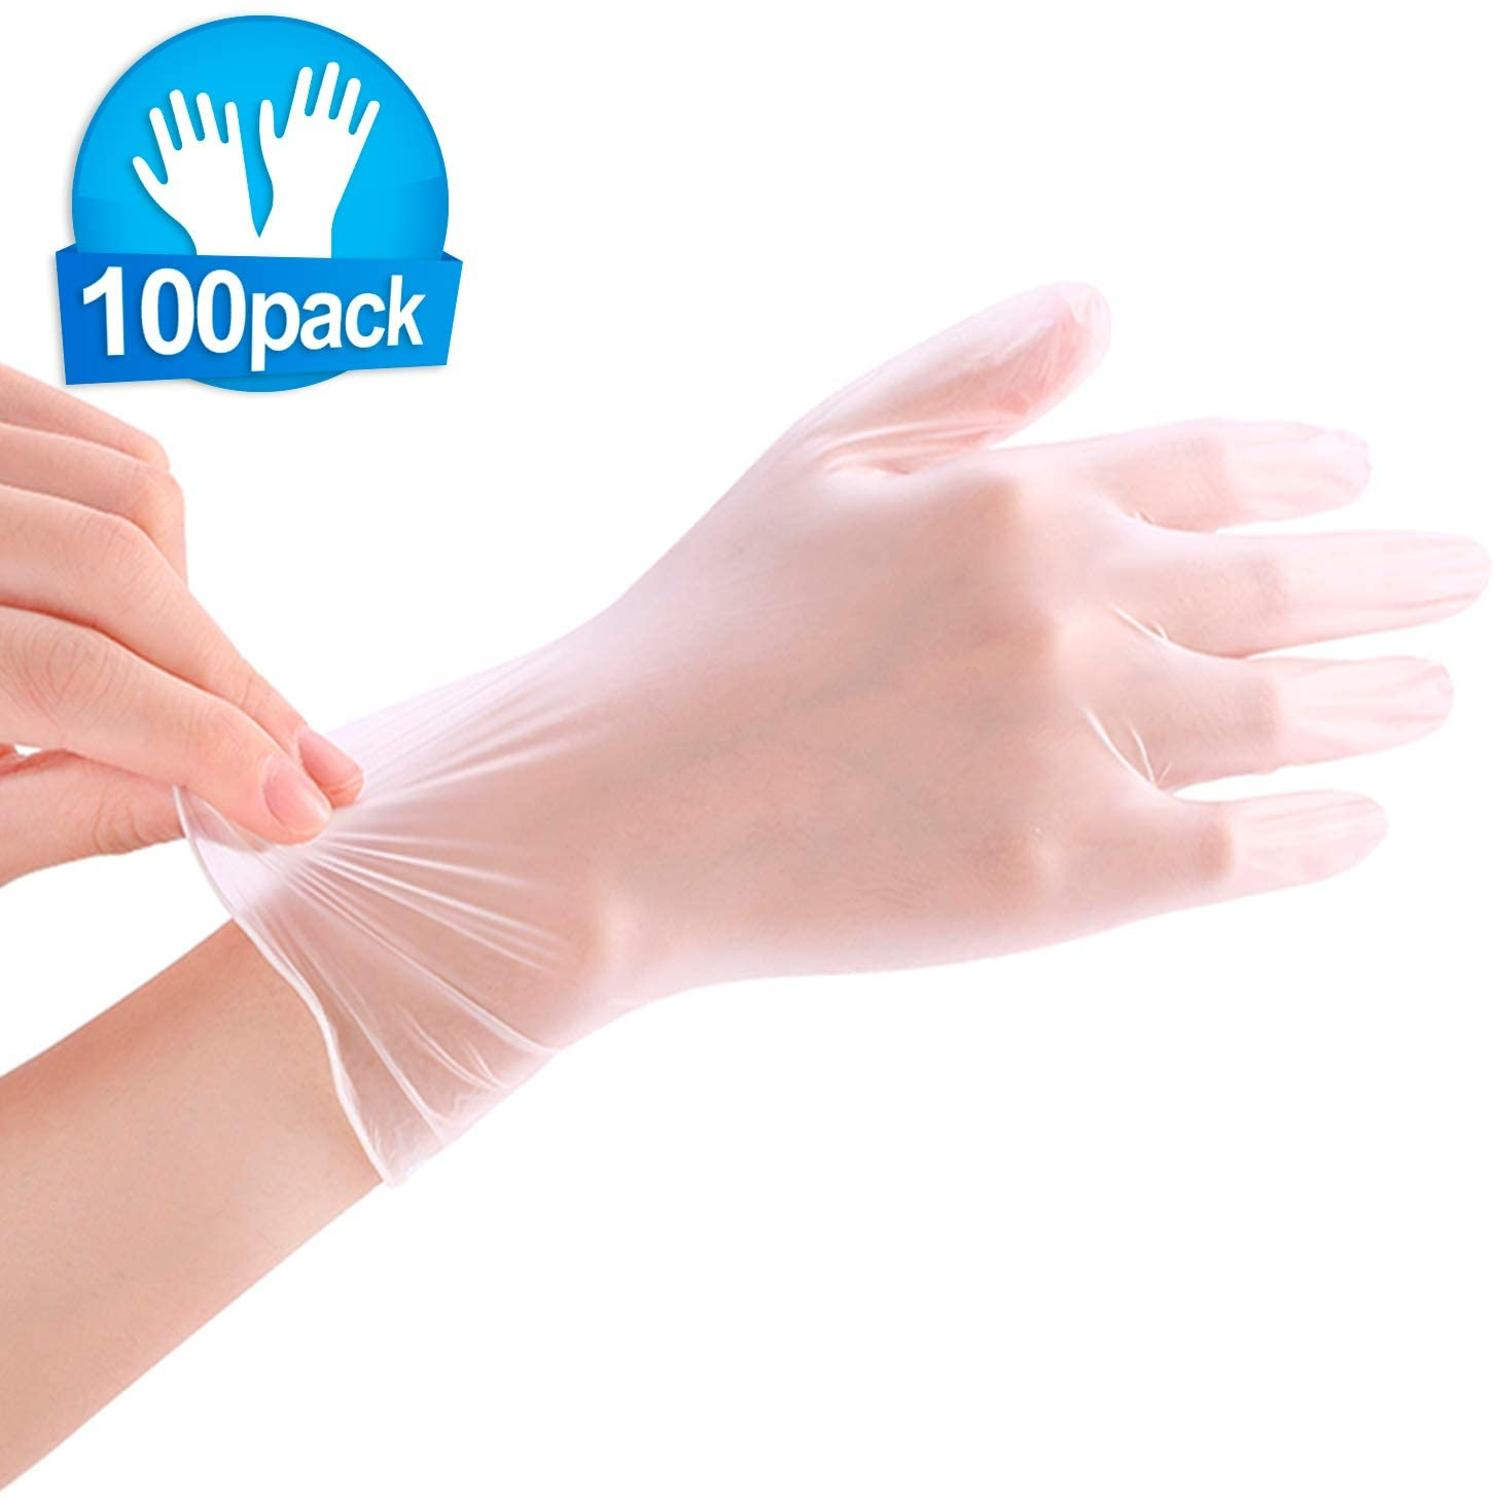 Disposable Transparent Gloves 100pcs Household Cleaning Washing Gloves PVC Laboratory Nail Art Medical Tattoo Anti-Static Gloves